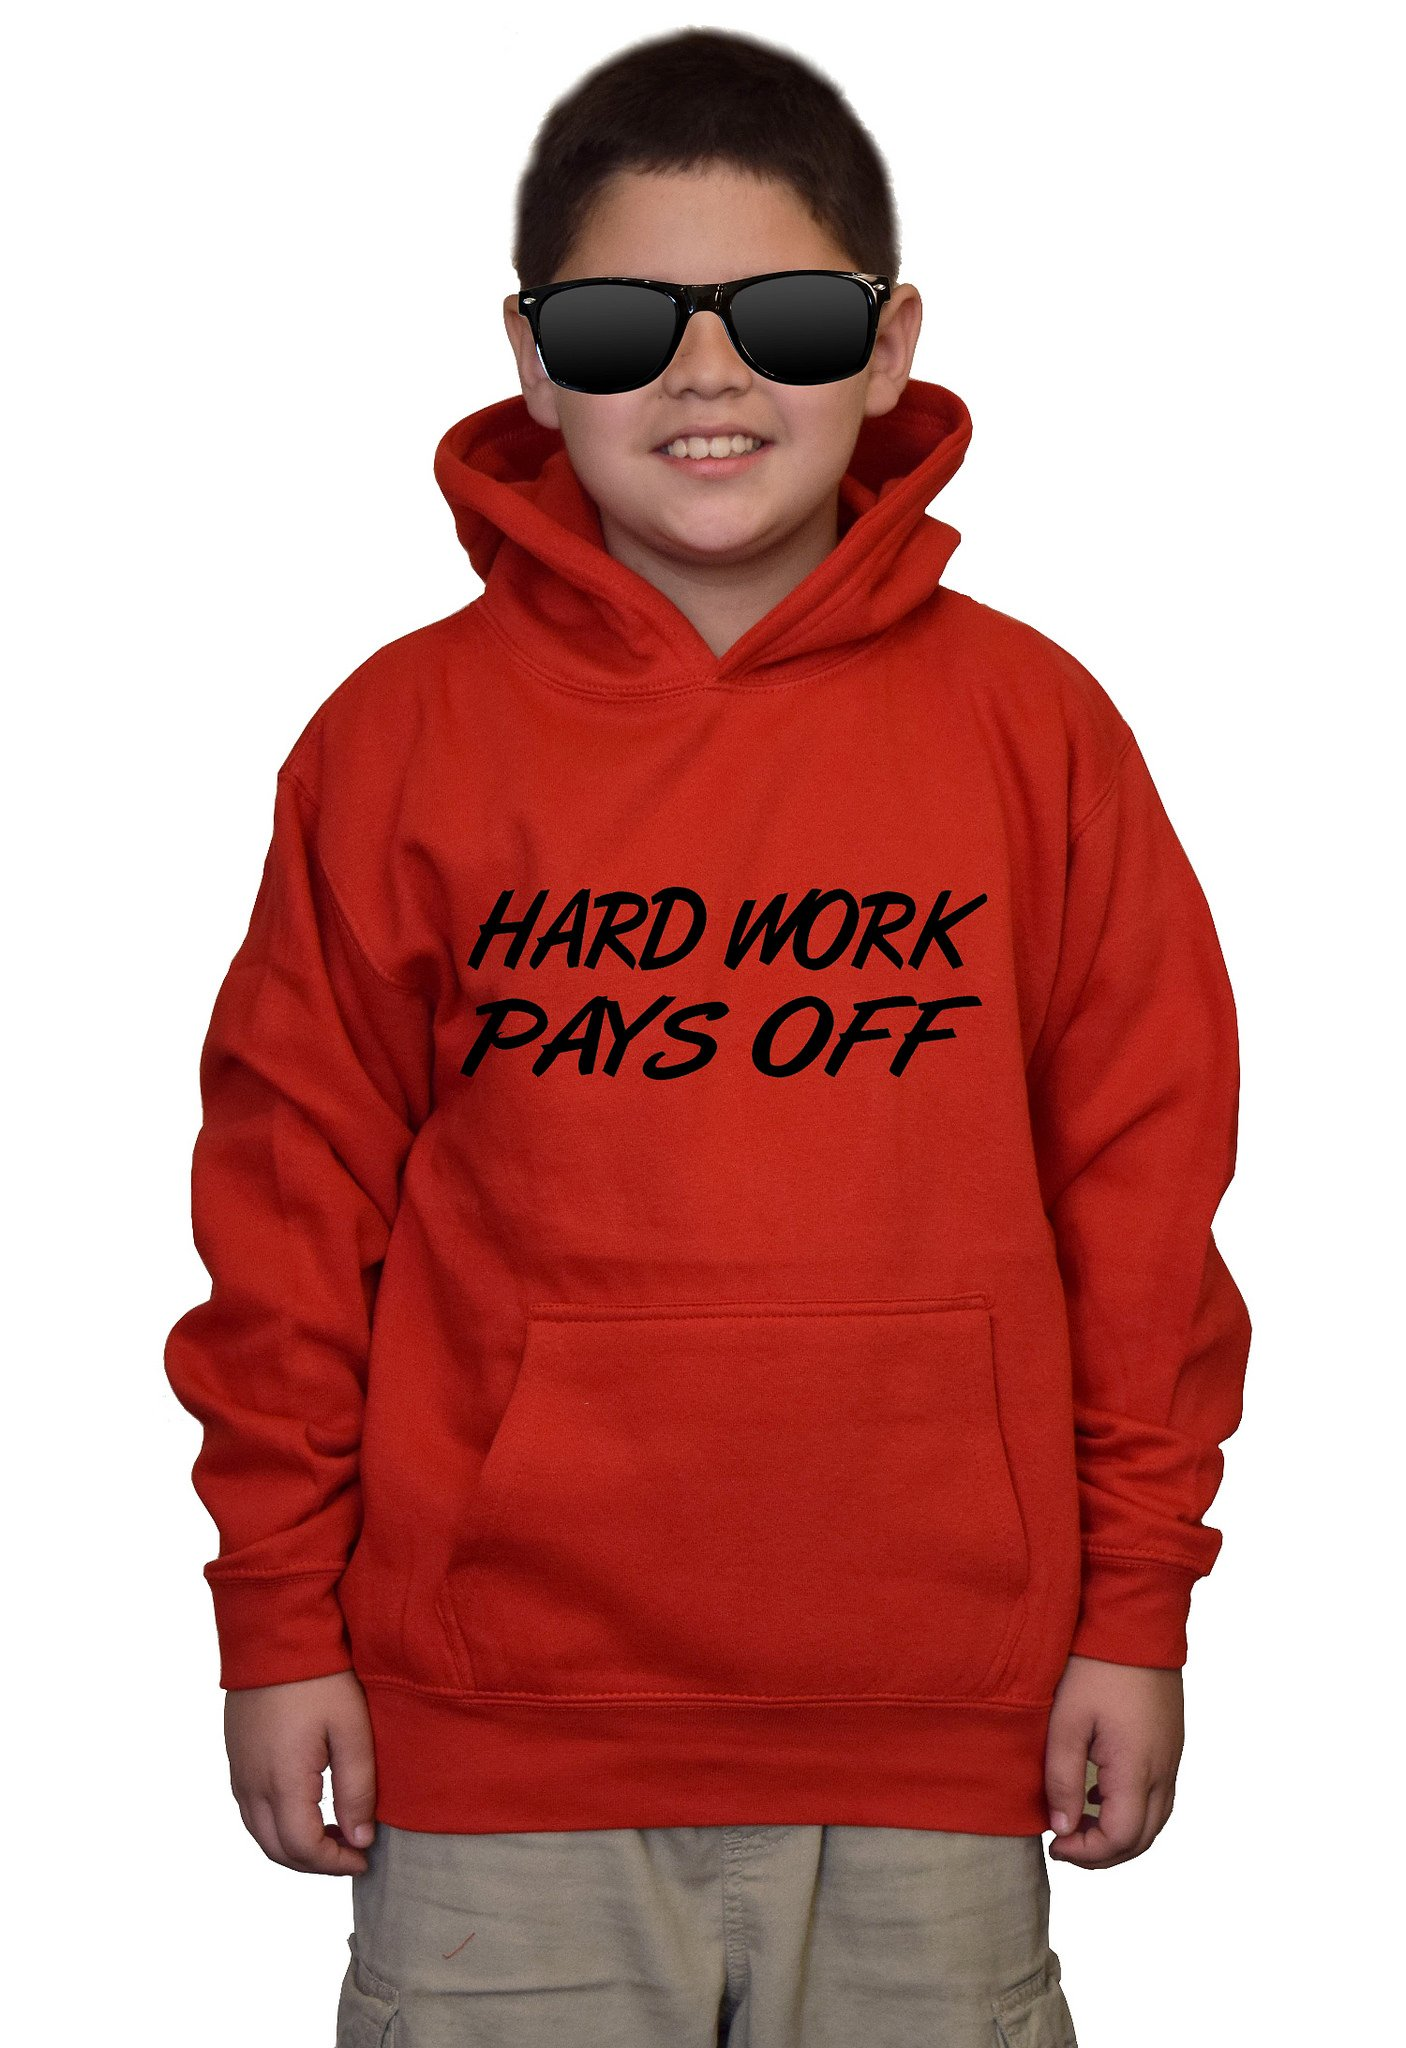 Youth Hard Work Pays Off V438 Red kids Sweatshirt Hoodie Small by Interstate Apparel